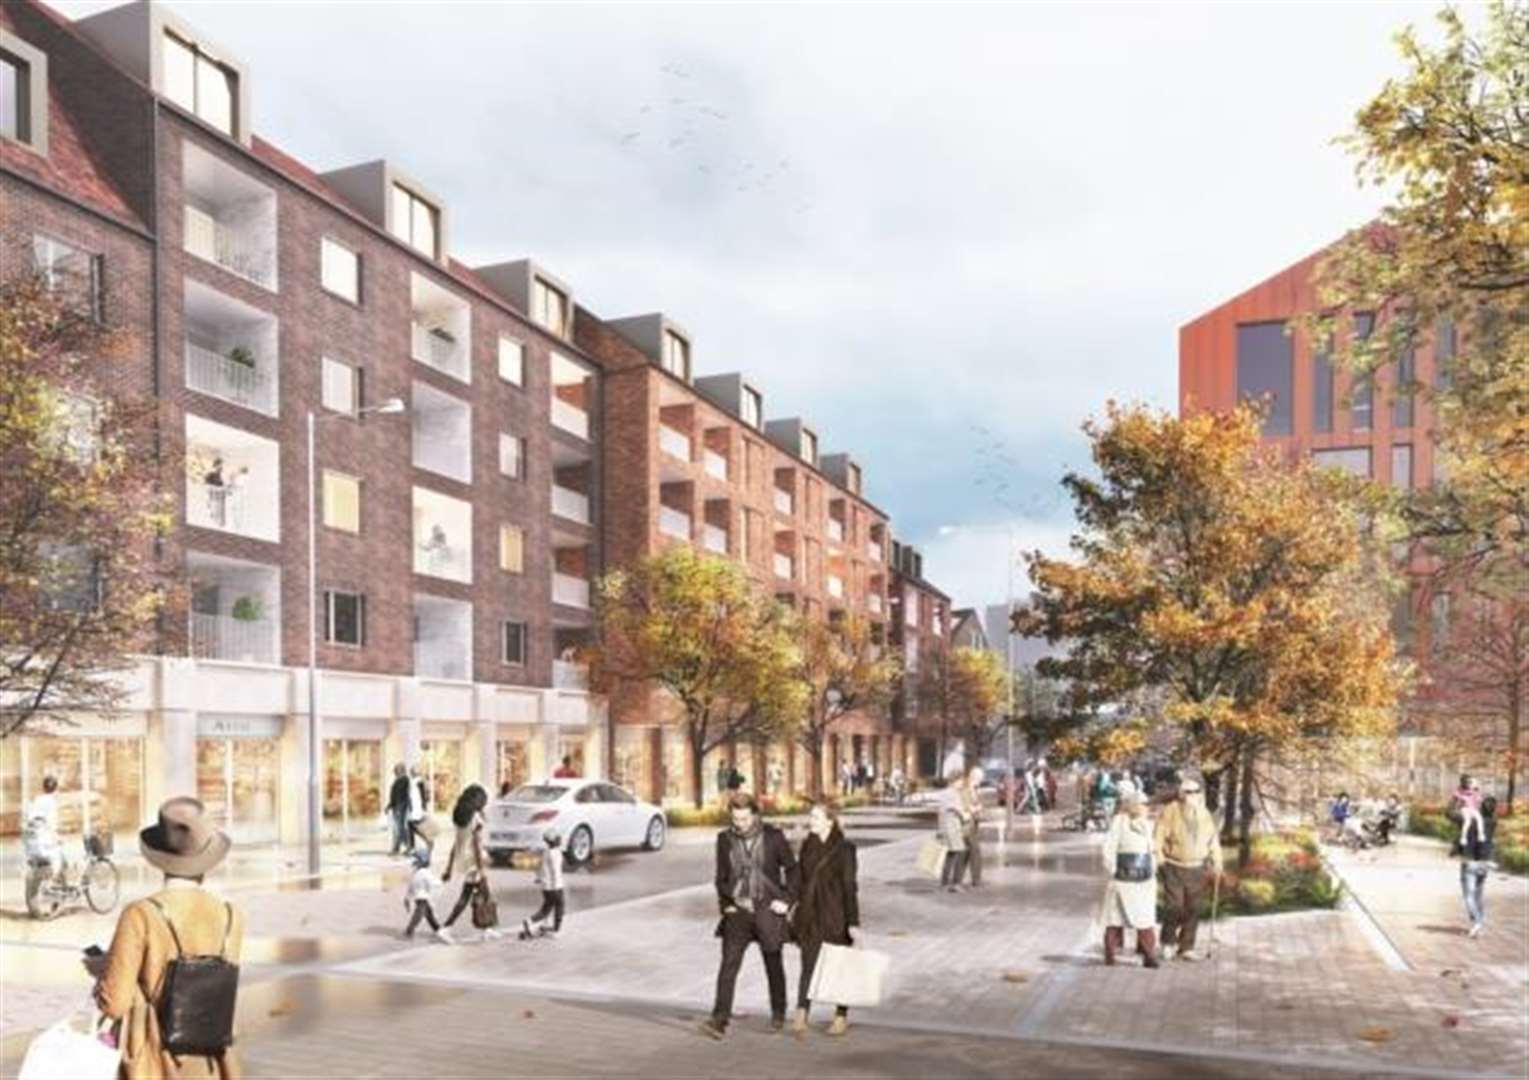 East Herts Council approves Bishop's Stortford Goods Yard plan for 586 new homes